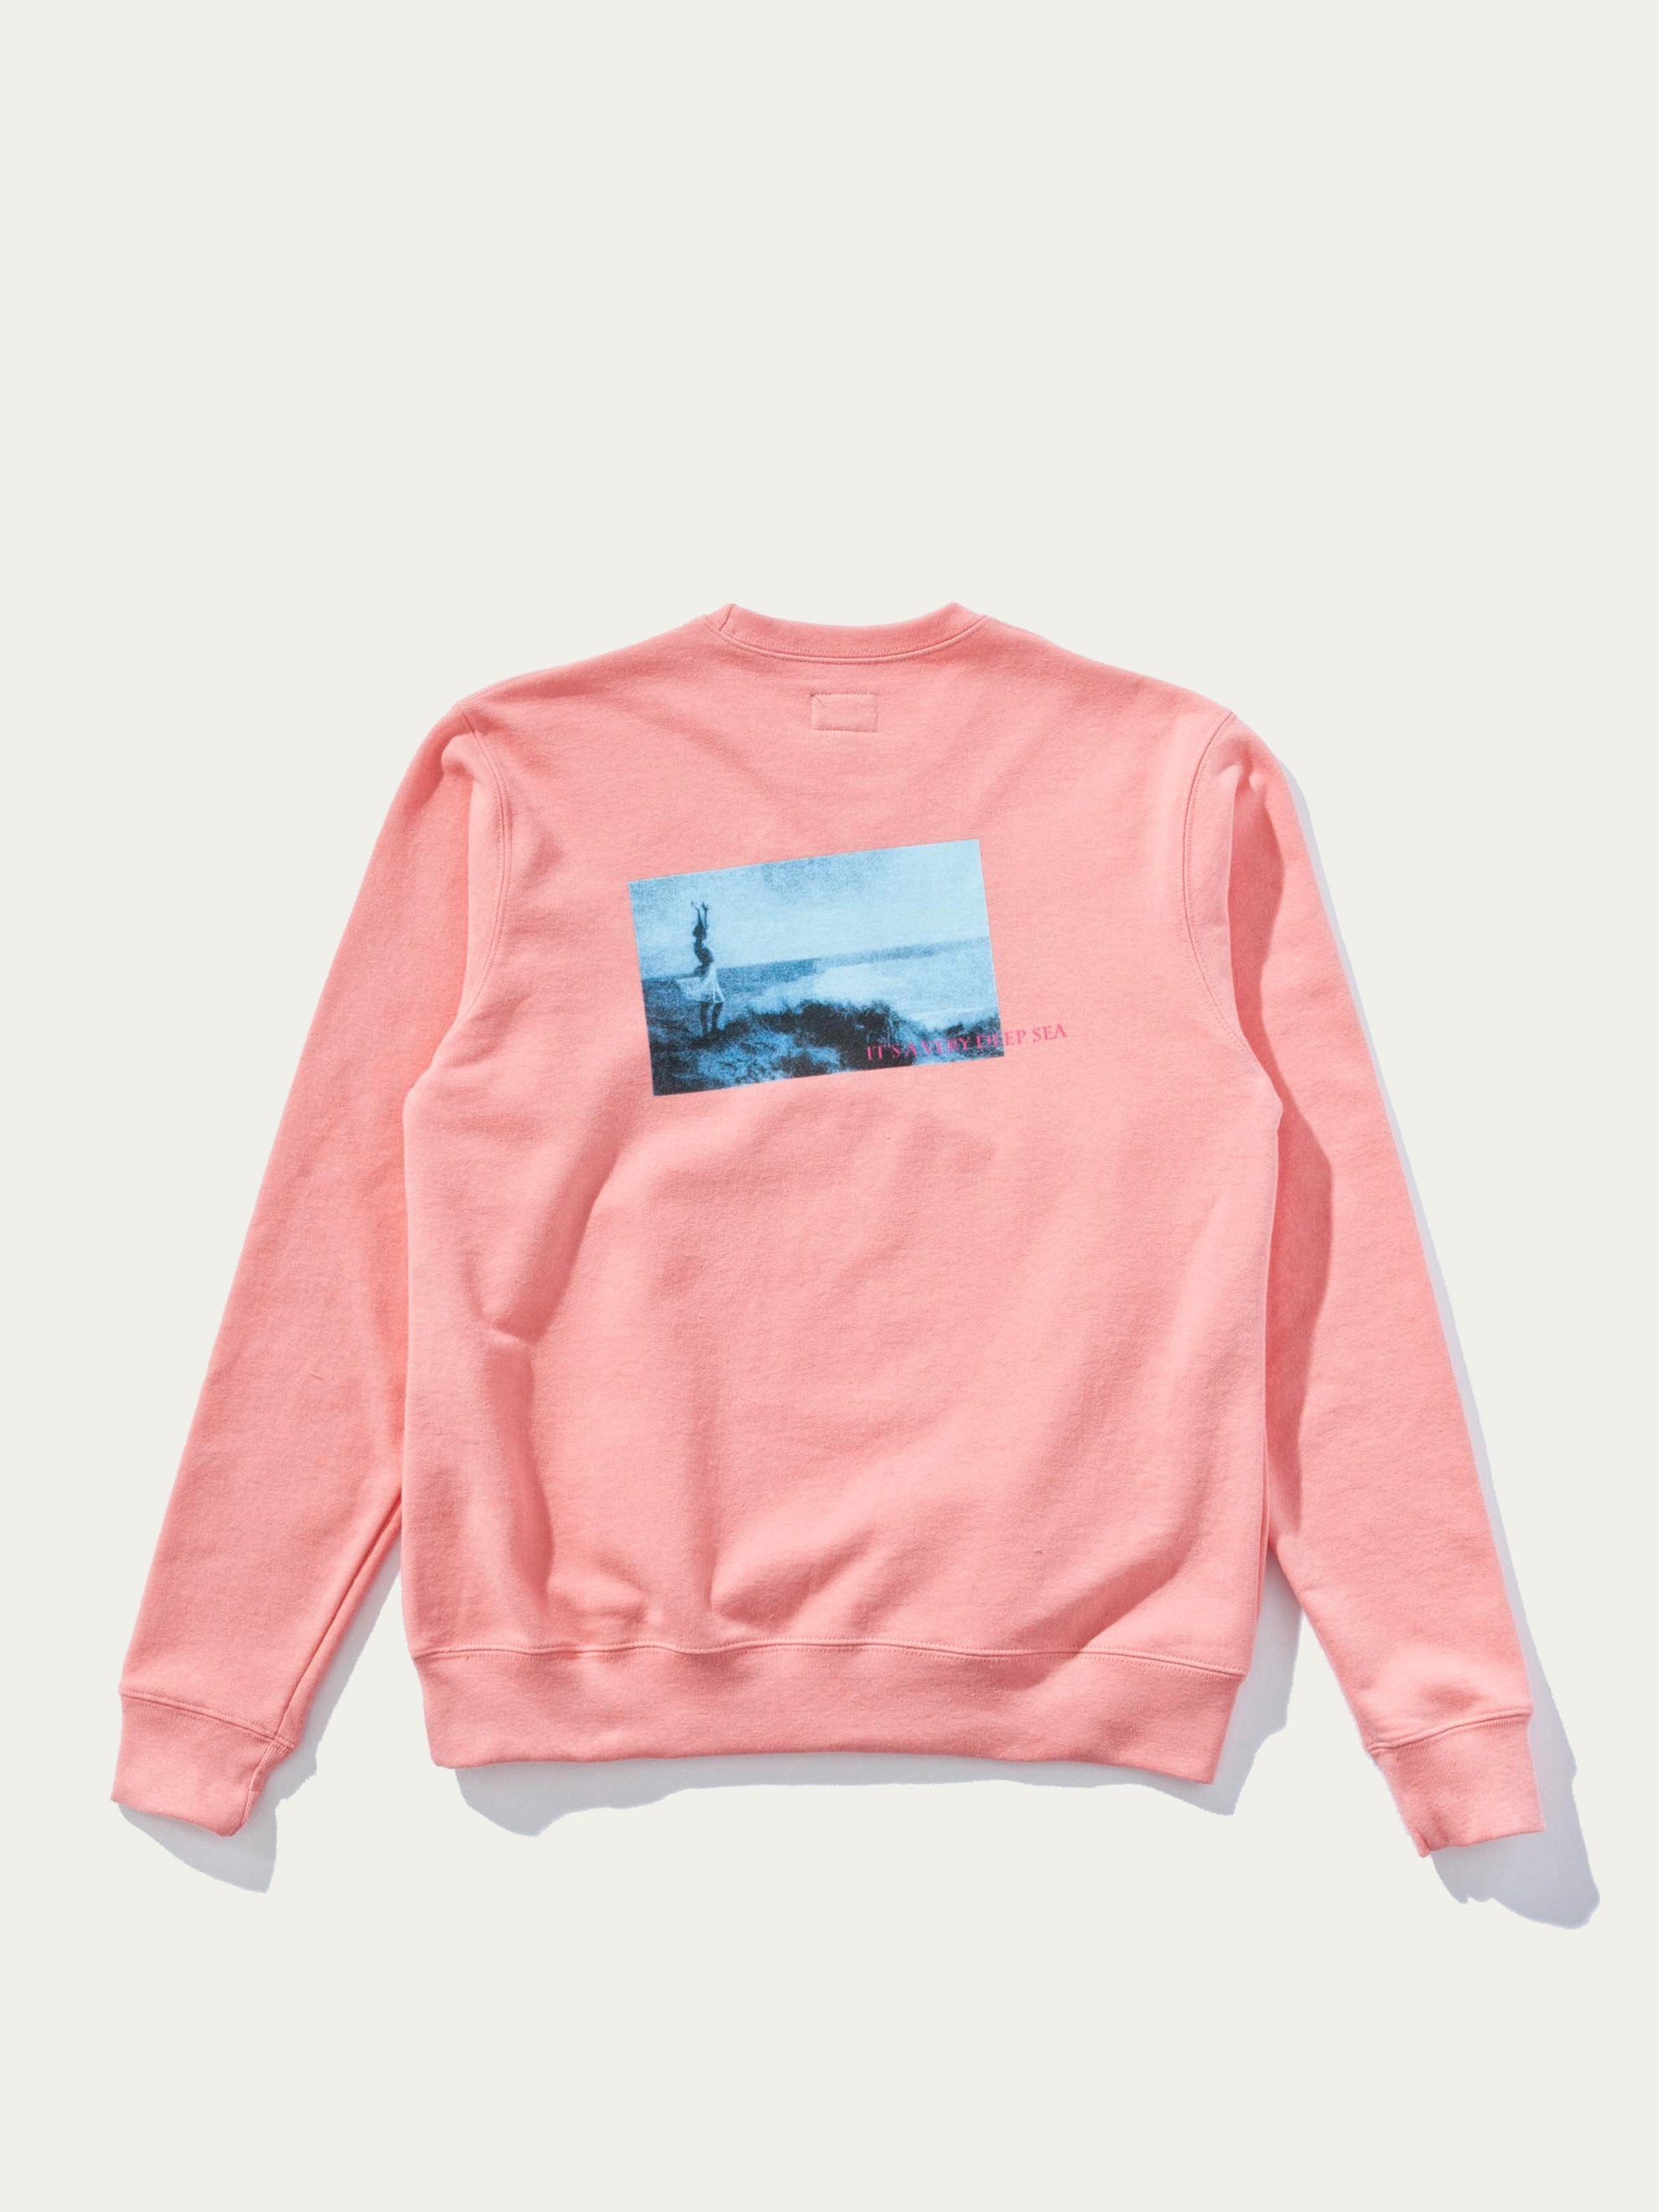 Deep Sea Crew Sweatshirt